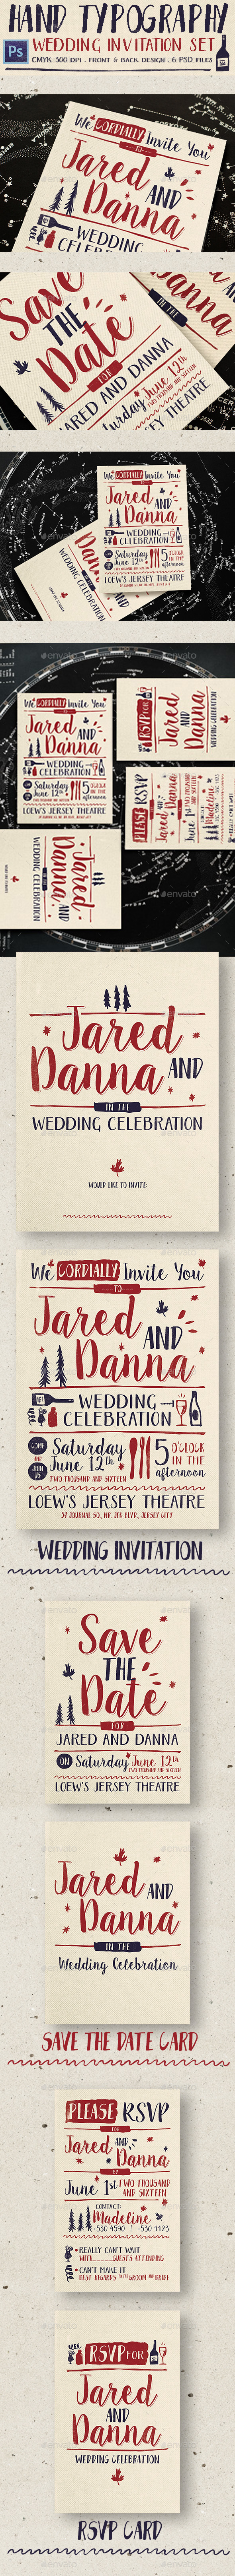 Hand Typography Wedding Invitation - Weddings Cards & Invites